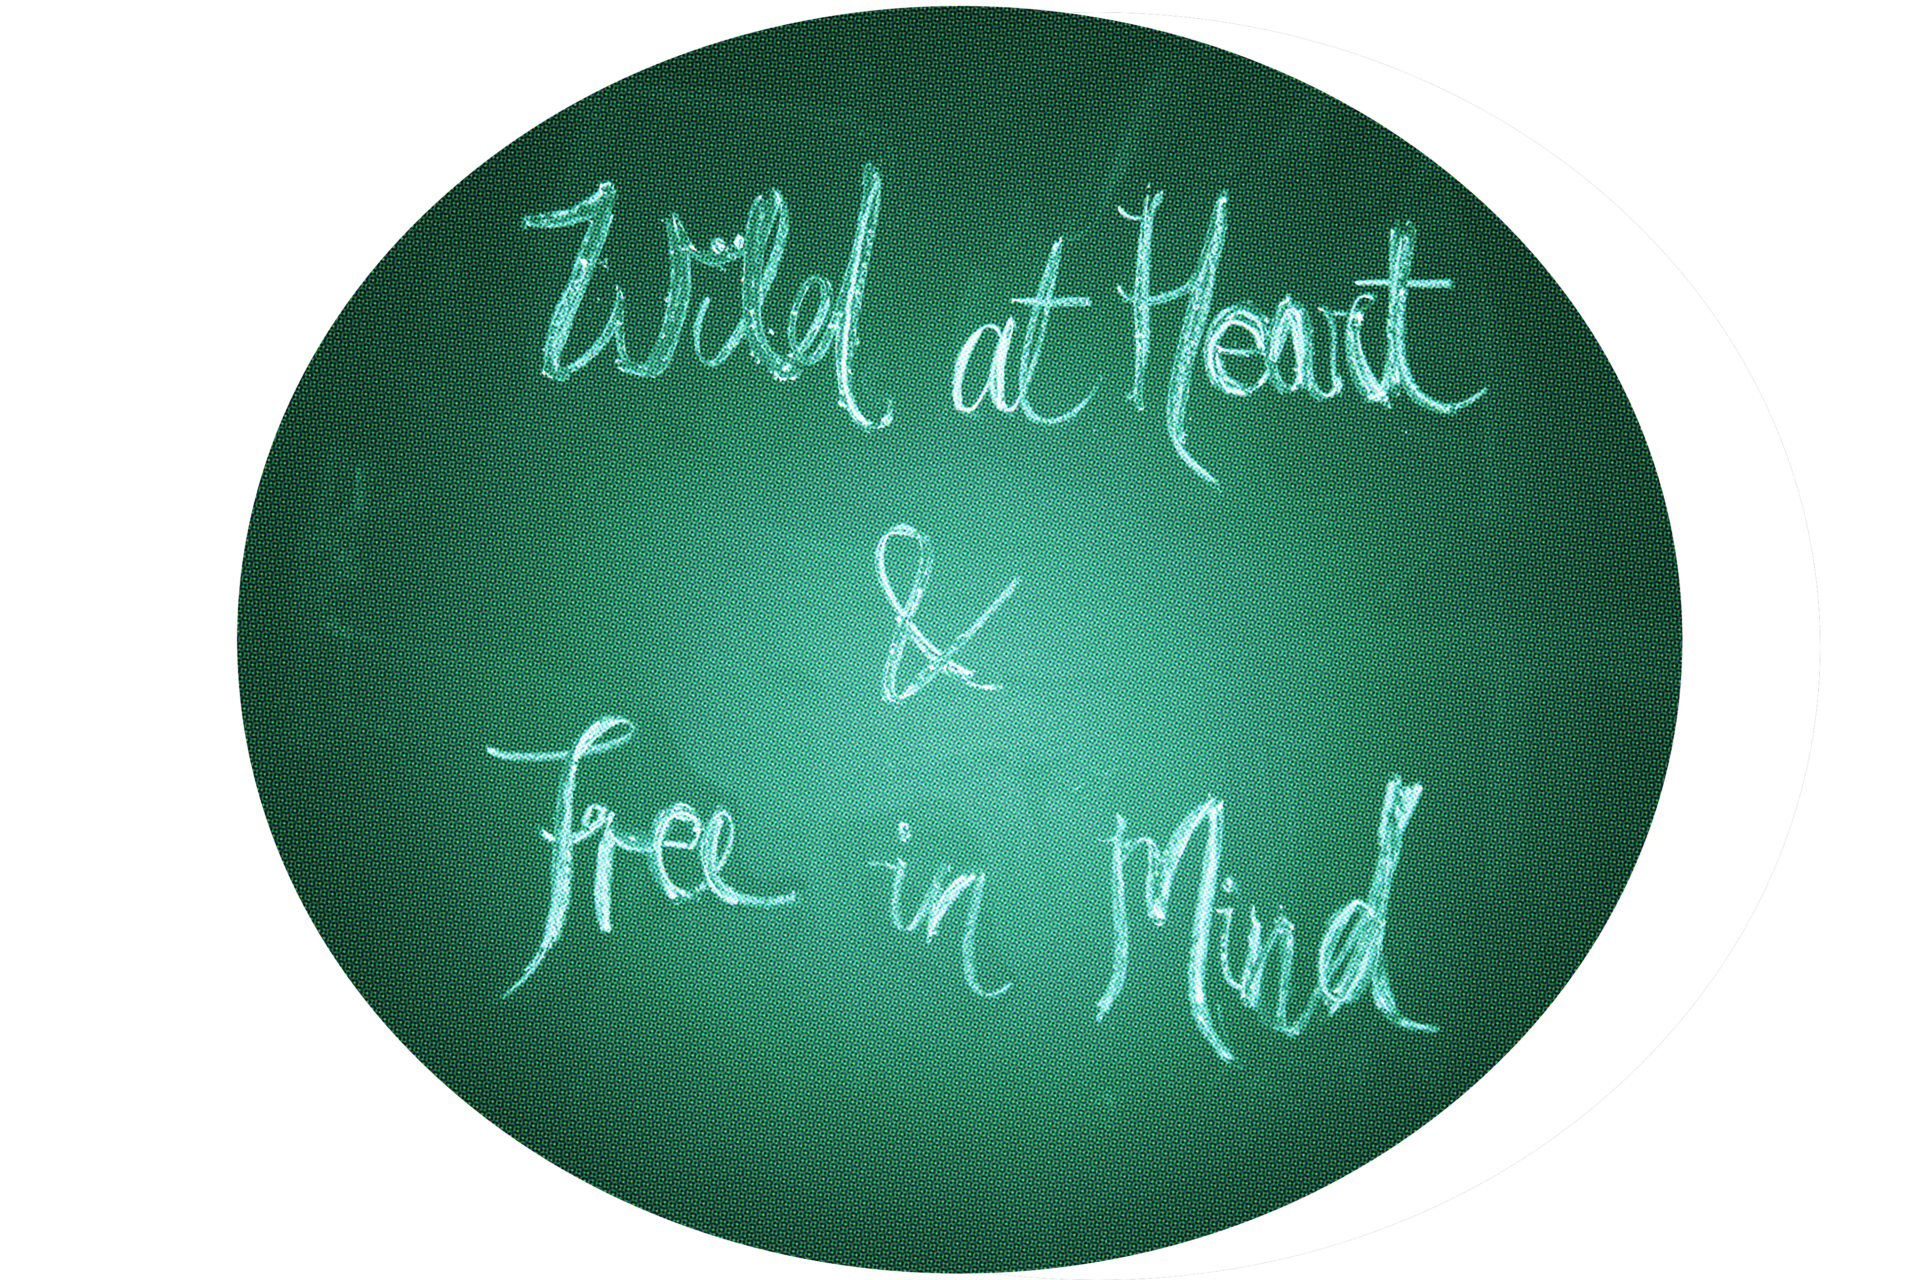 Wild at heart and free in mind